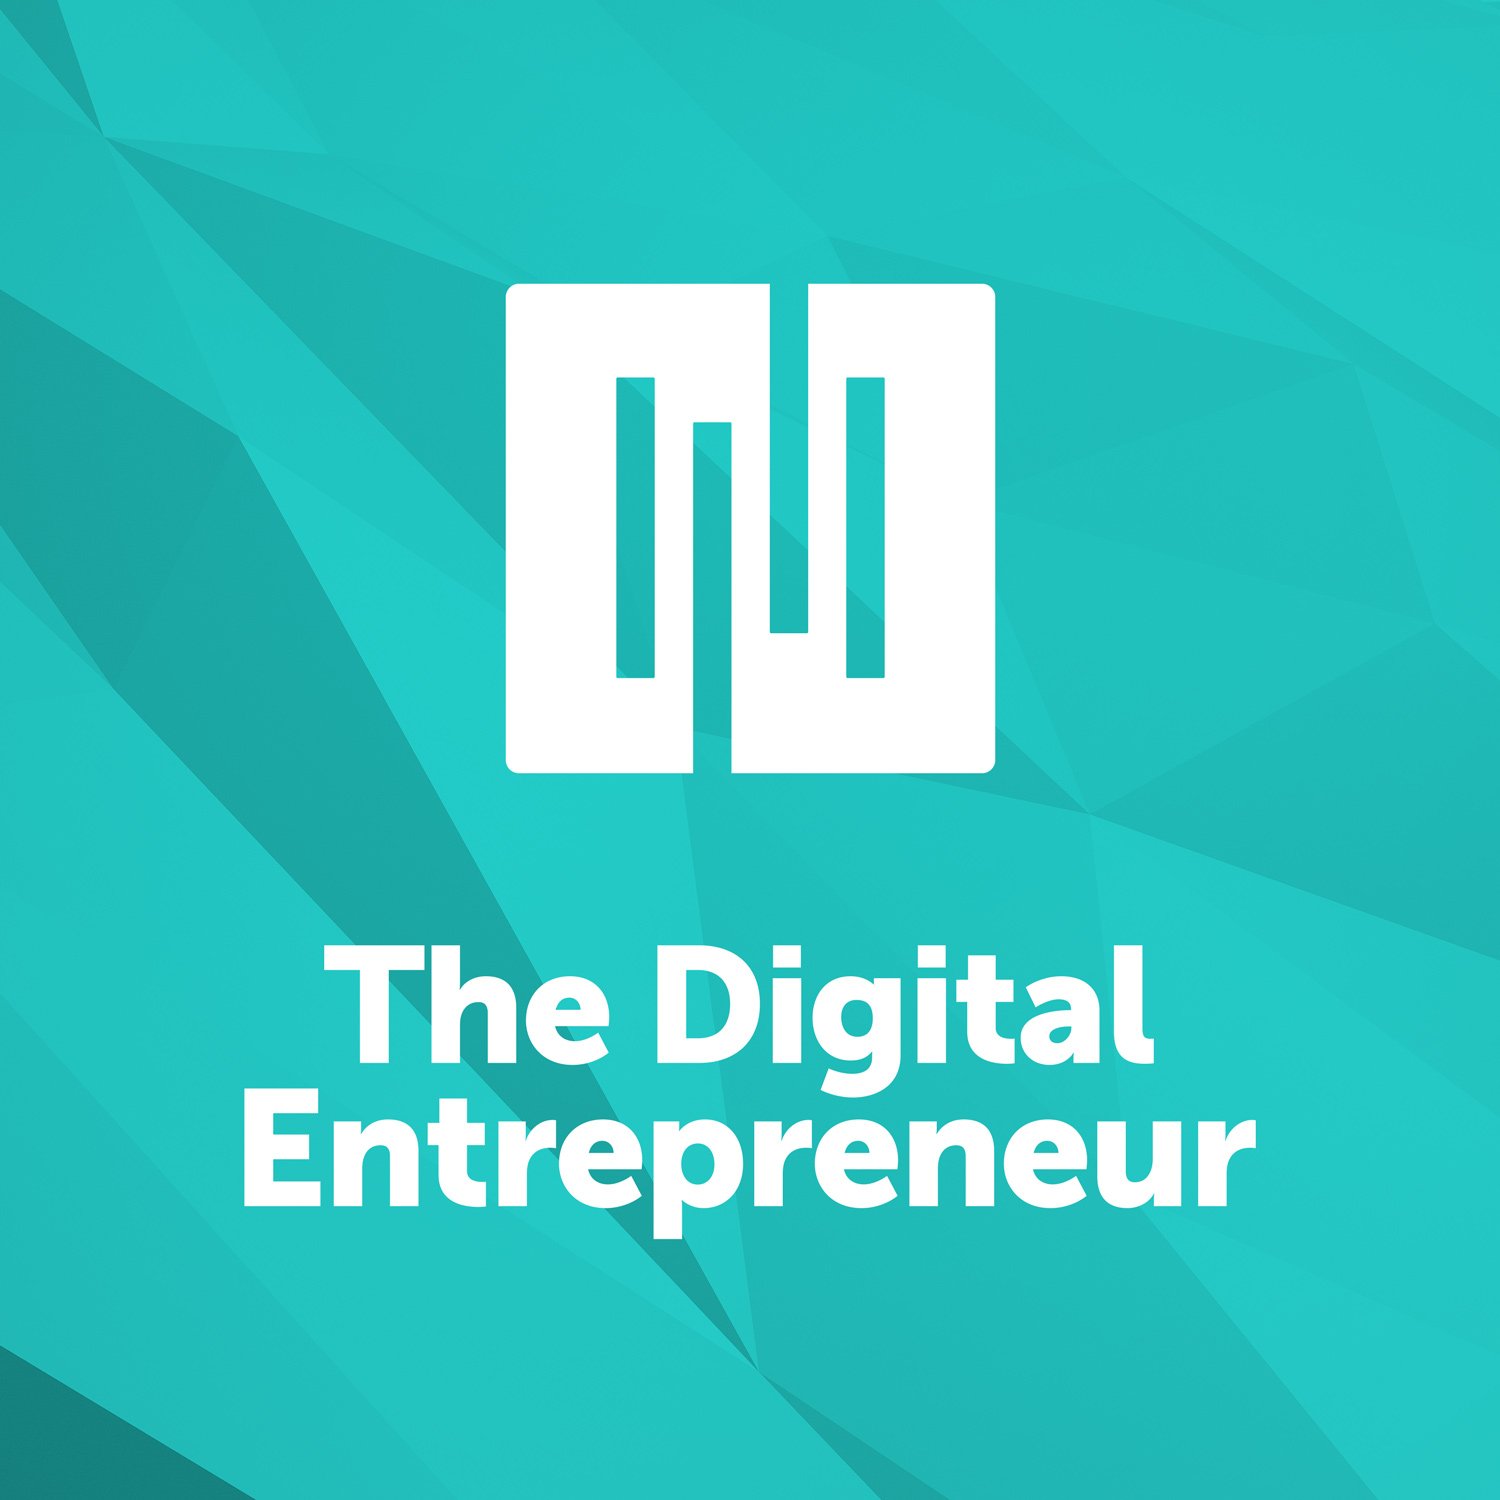 The Digital Entrepreneur